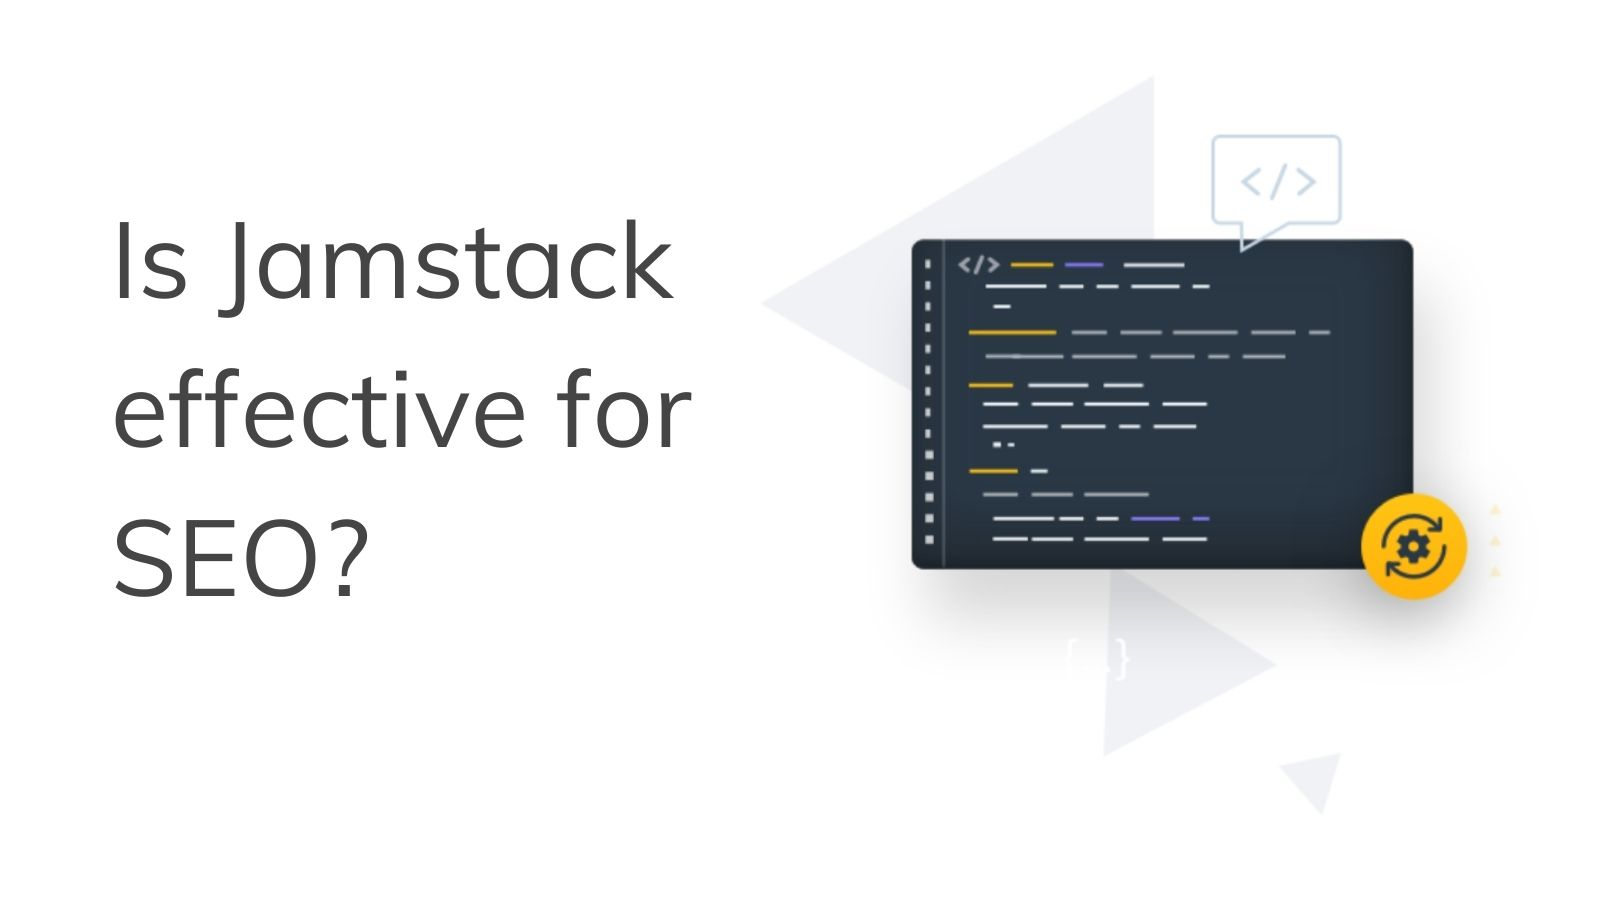 Is Jamstack effective for SEO?